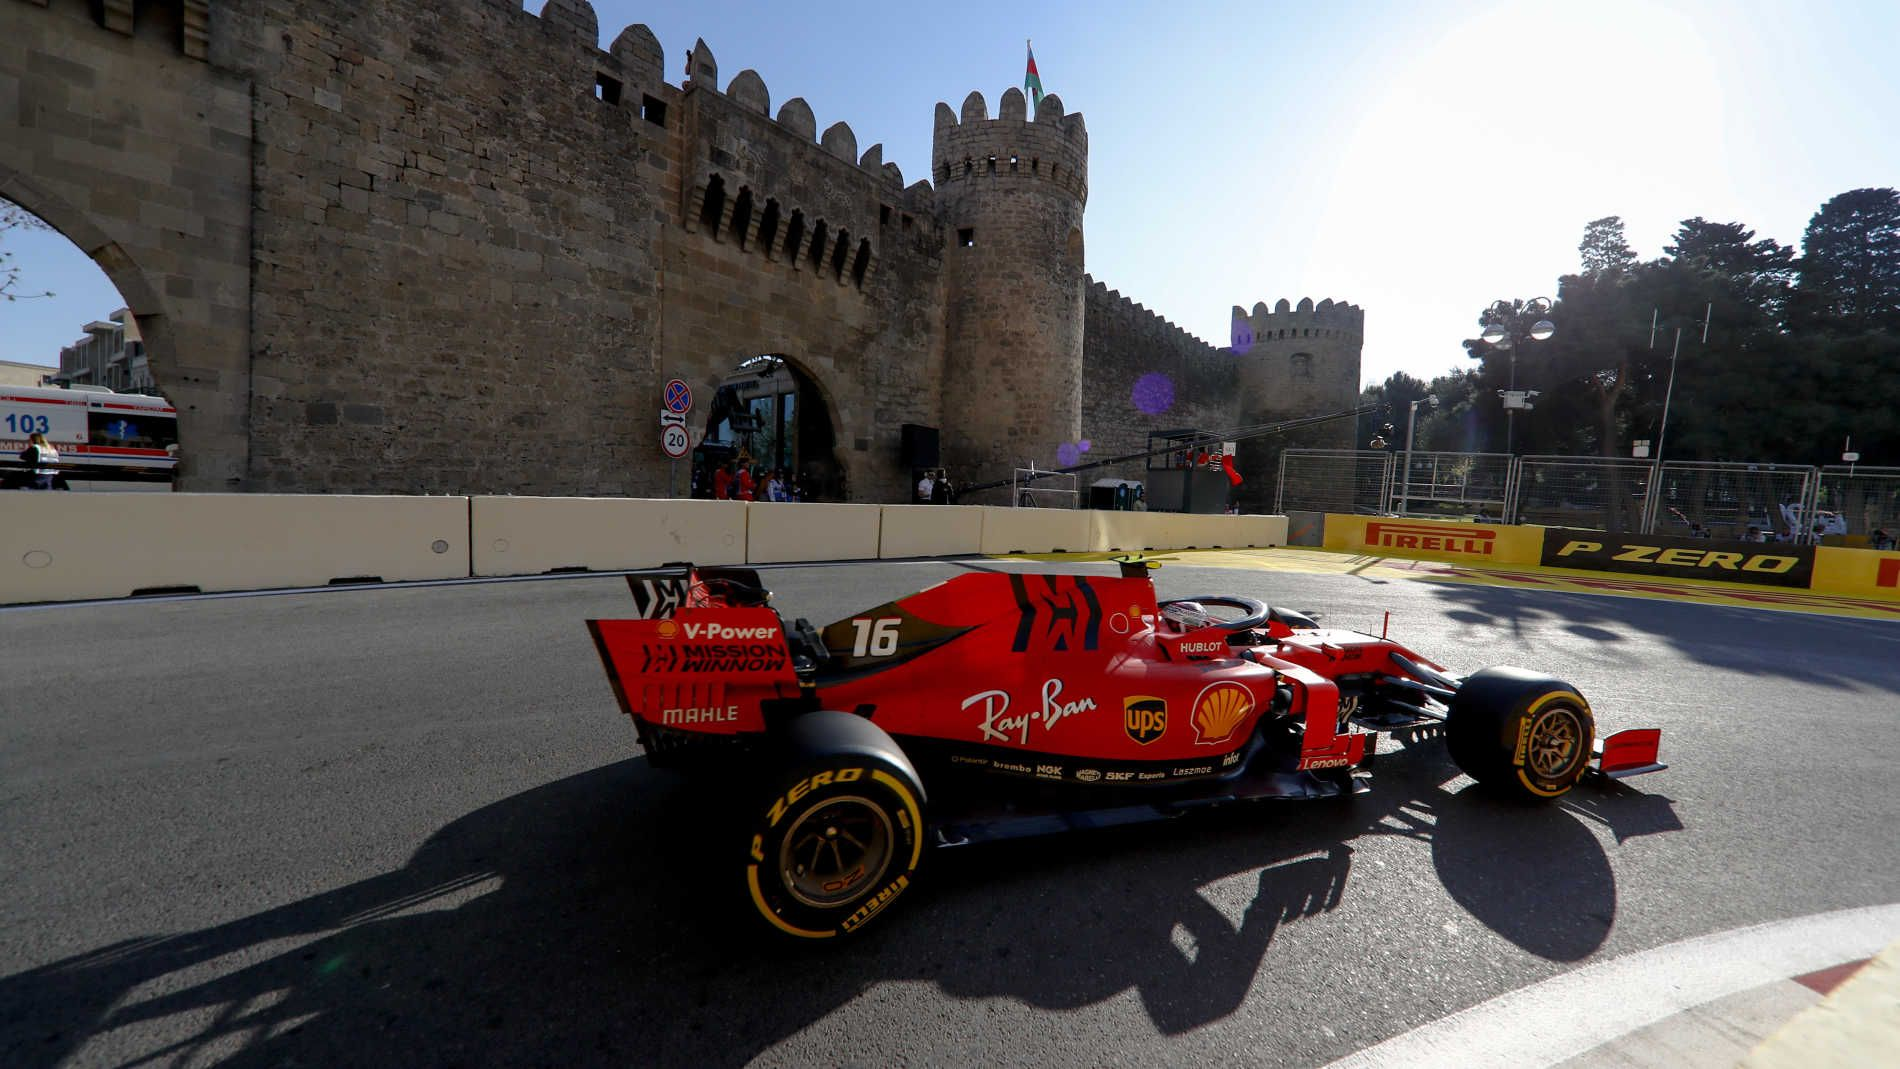 Highlights And Report From Fp2 At The 2019 Azerbaijan Grand Prix Ferrari Well Clear In Baku As Leclerc Heads Vettel Formula 1 Azerbaijan Grand Prix Ferrari Grand Prix